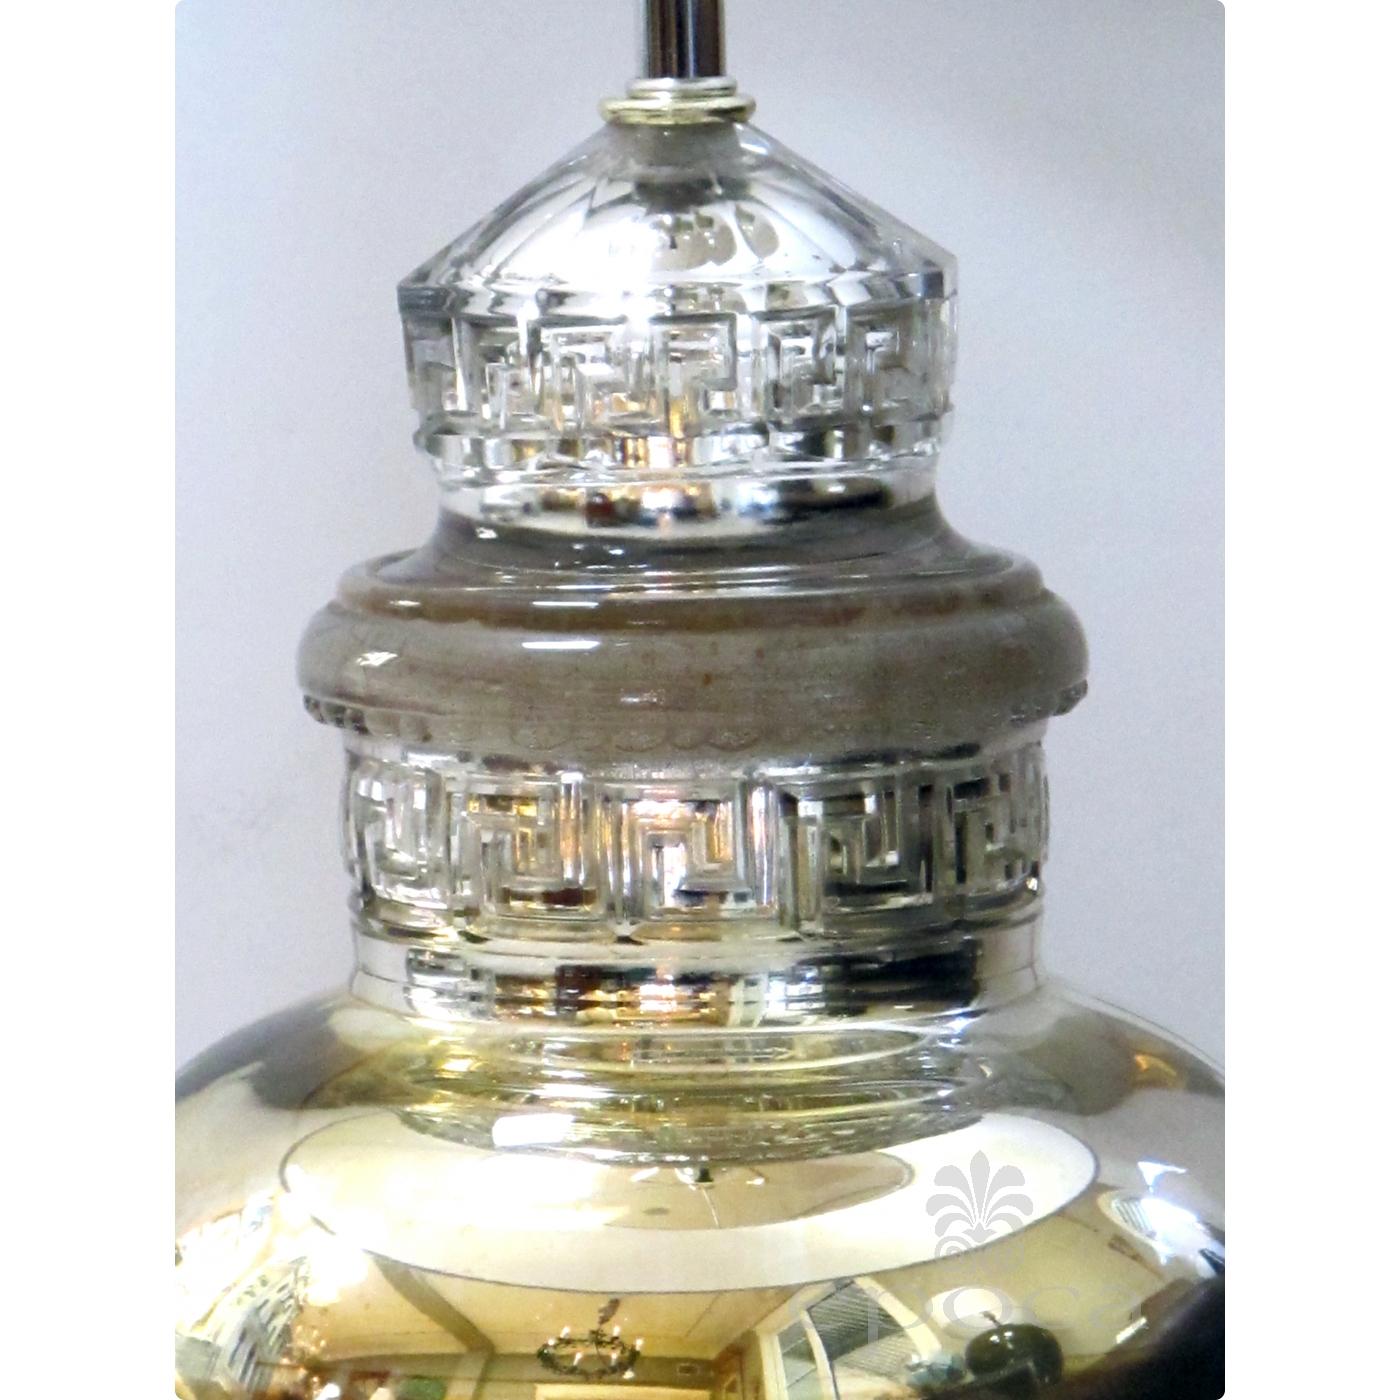 Shimmering American 1940 S Mercury Mirror Apothecary Jar Now Mounted As A